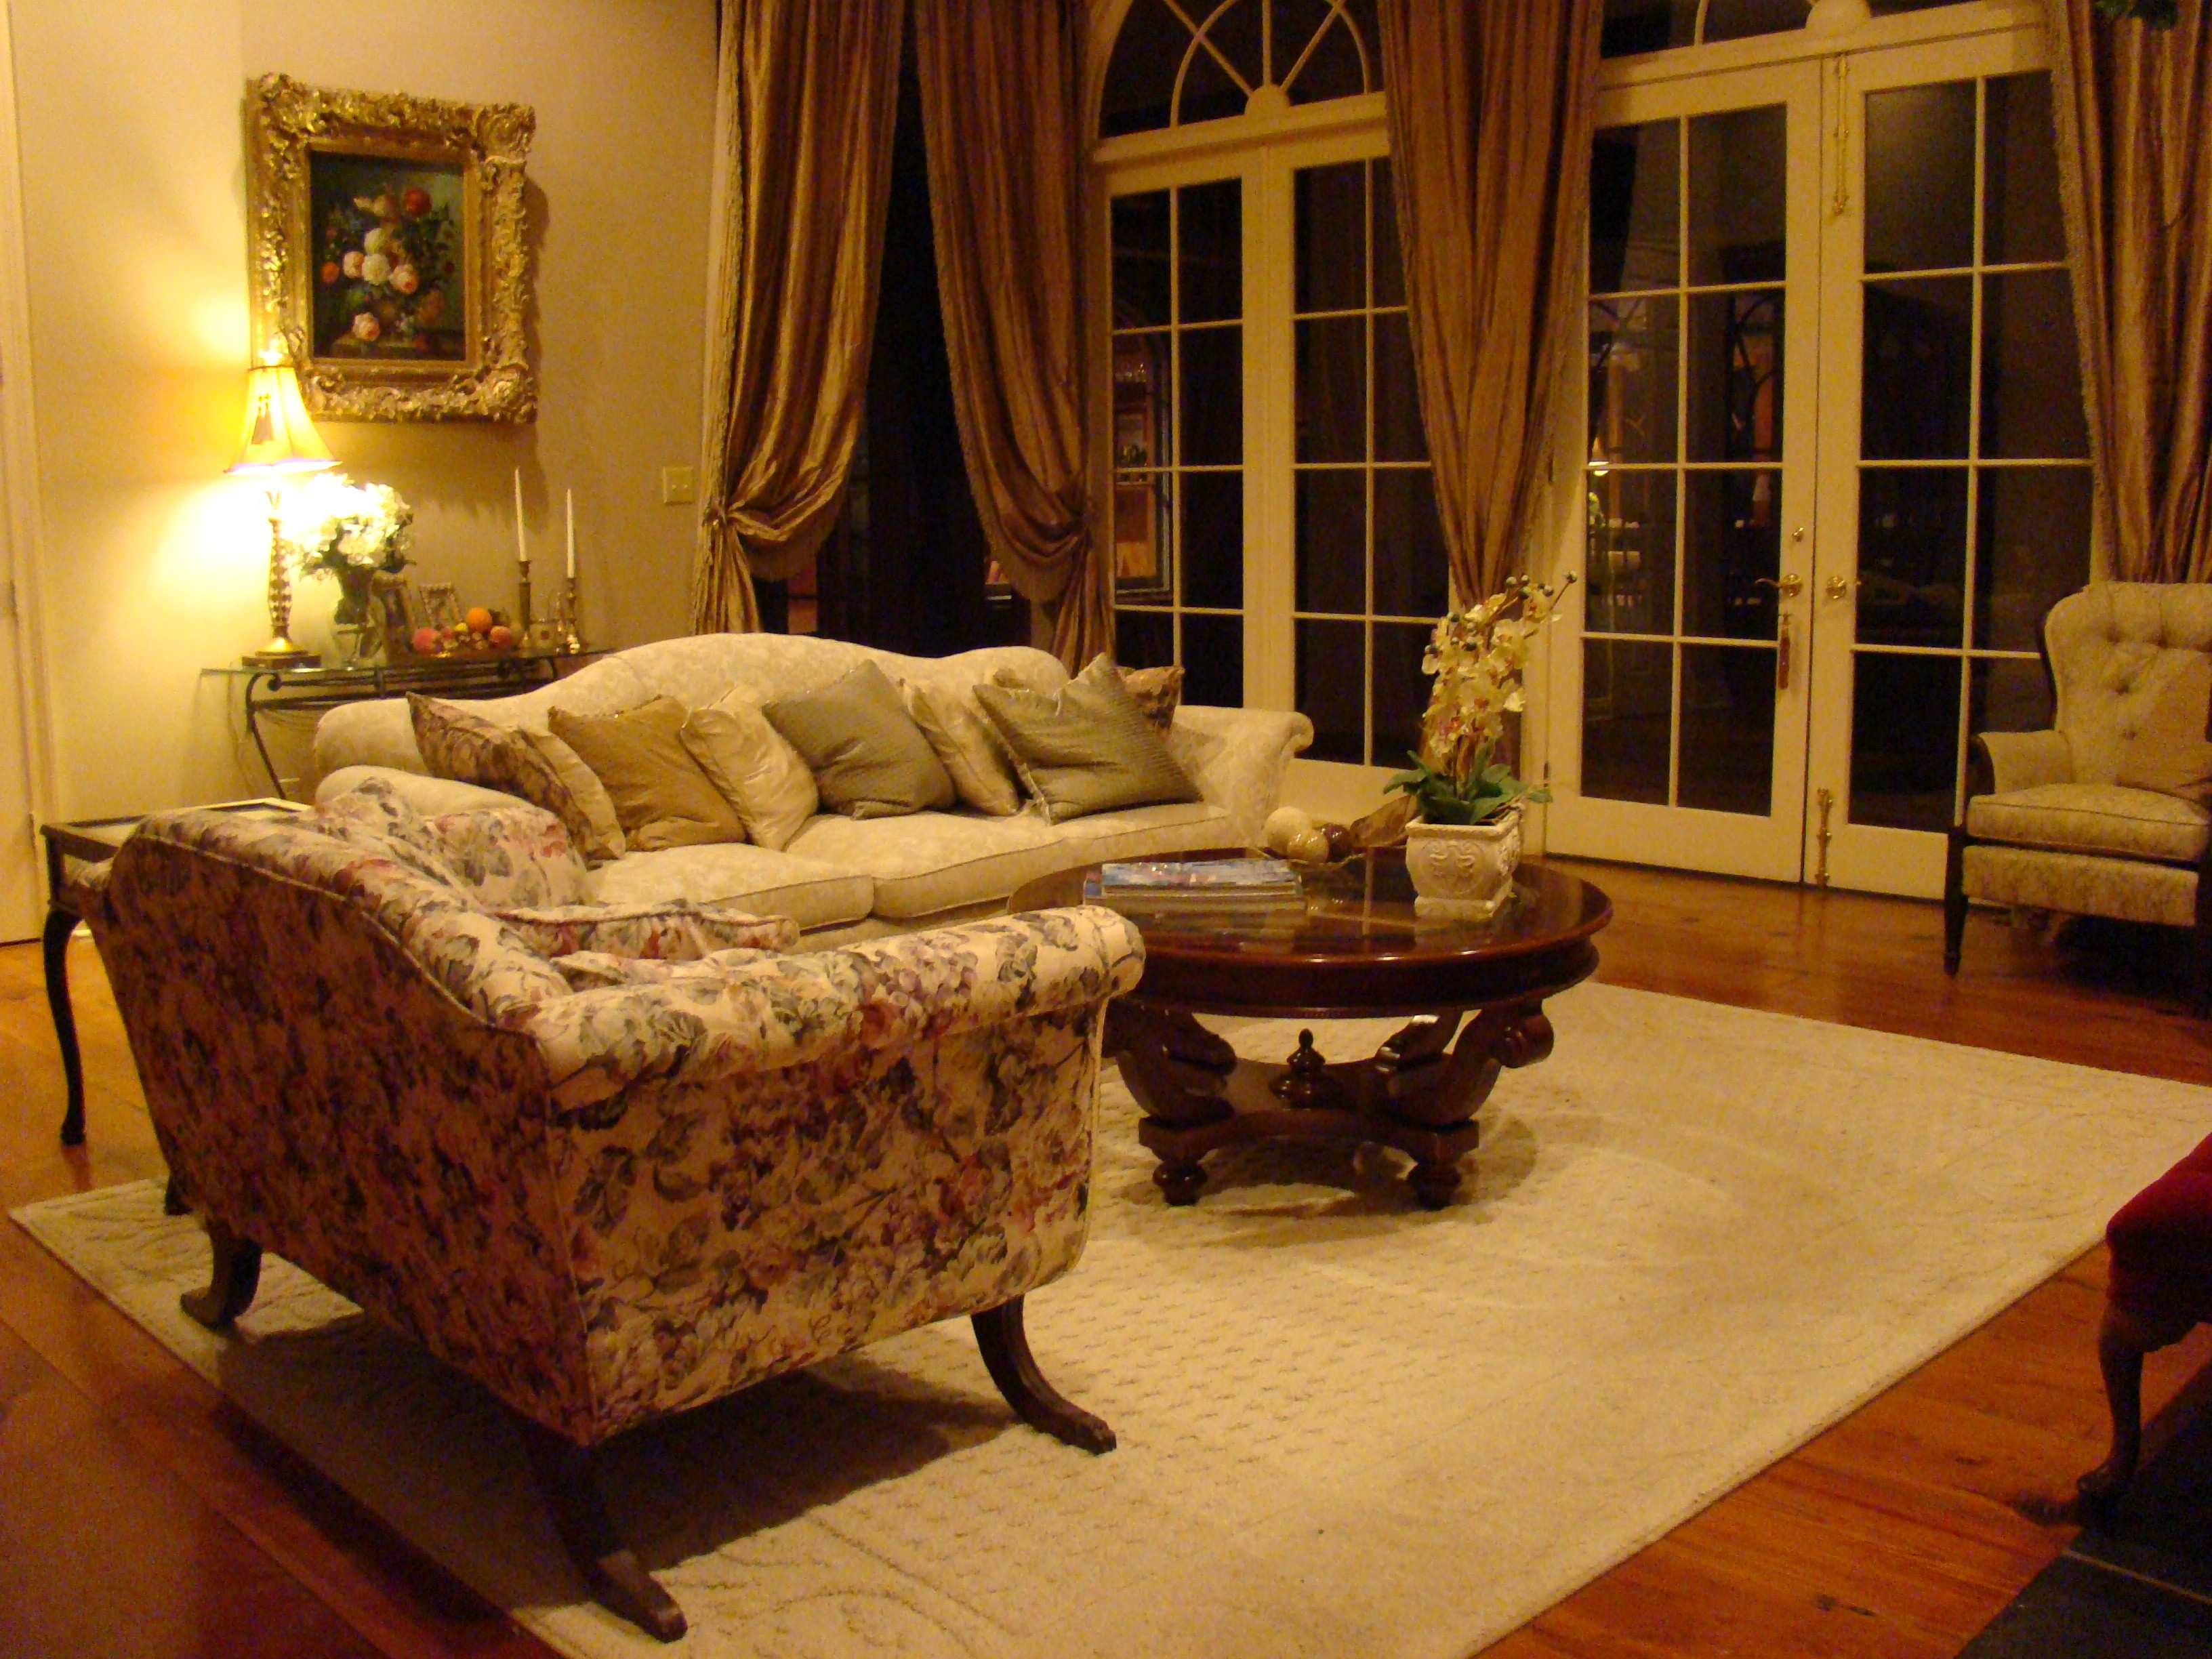 Luxury French Living Room Furniture (View 4 of 18)